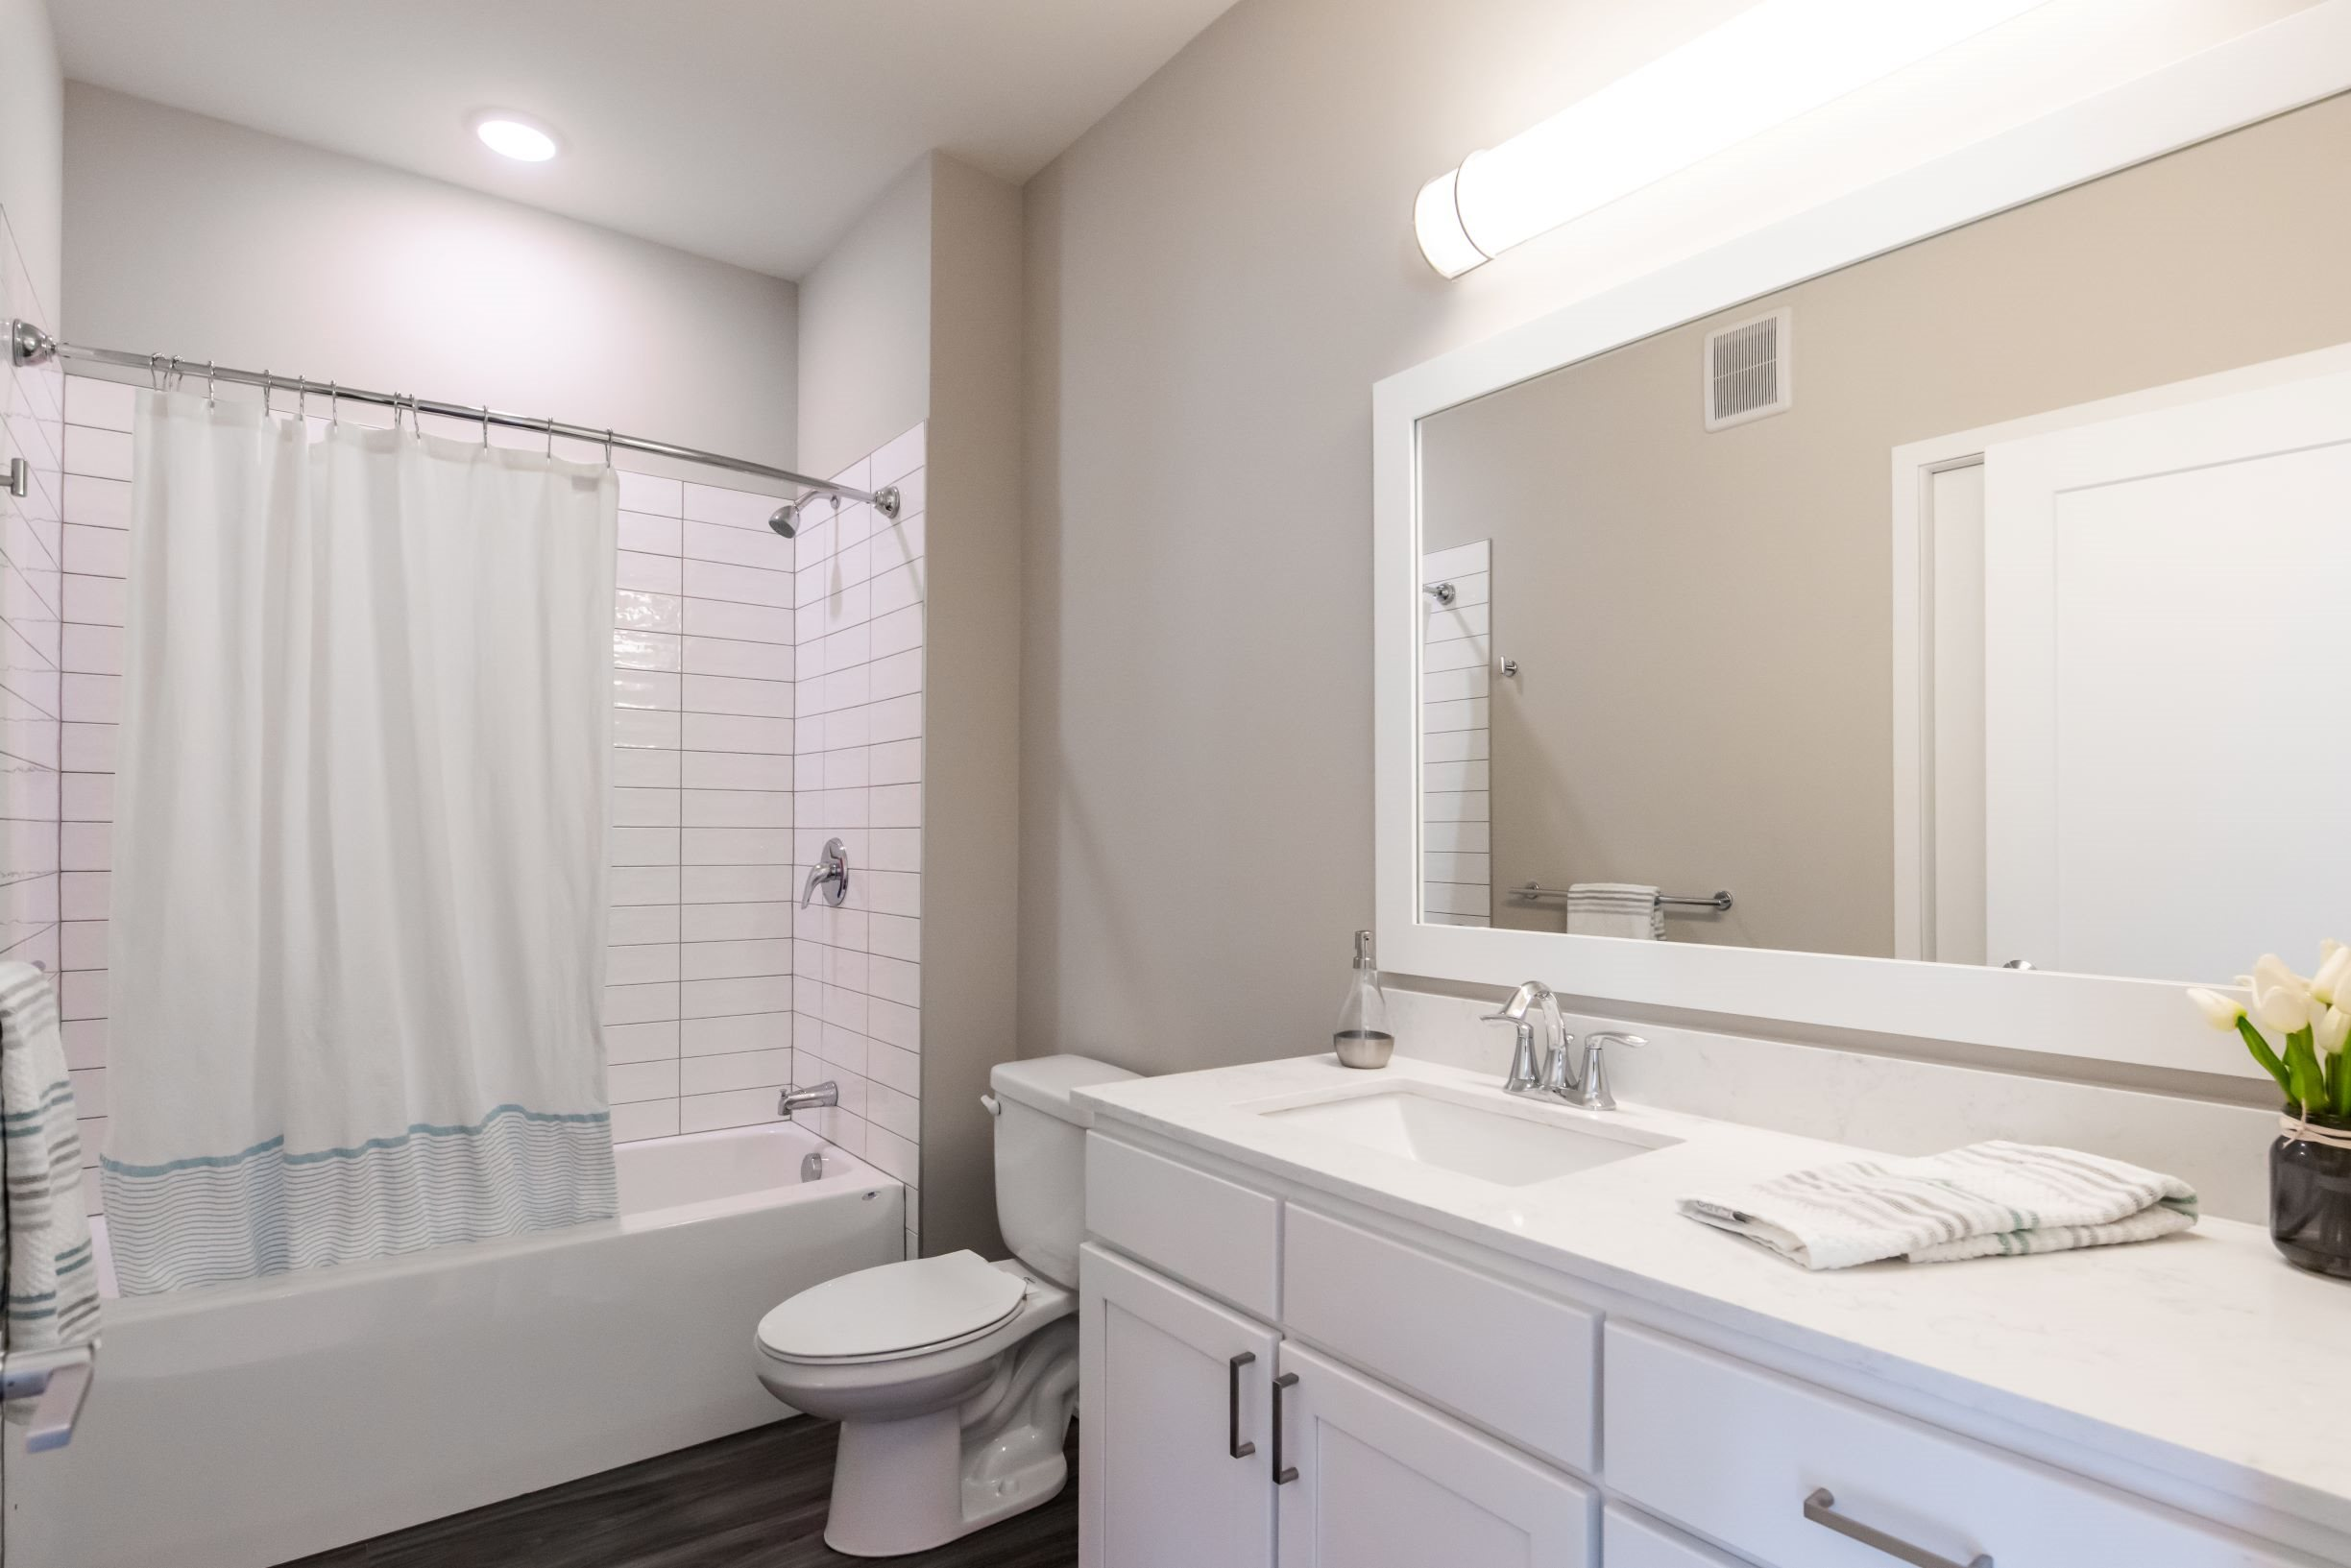 Townhome Bathroom with white cabinetry, subway tiled shower